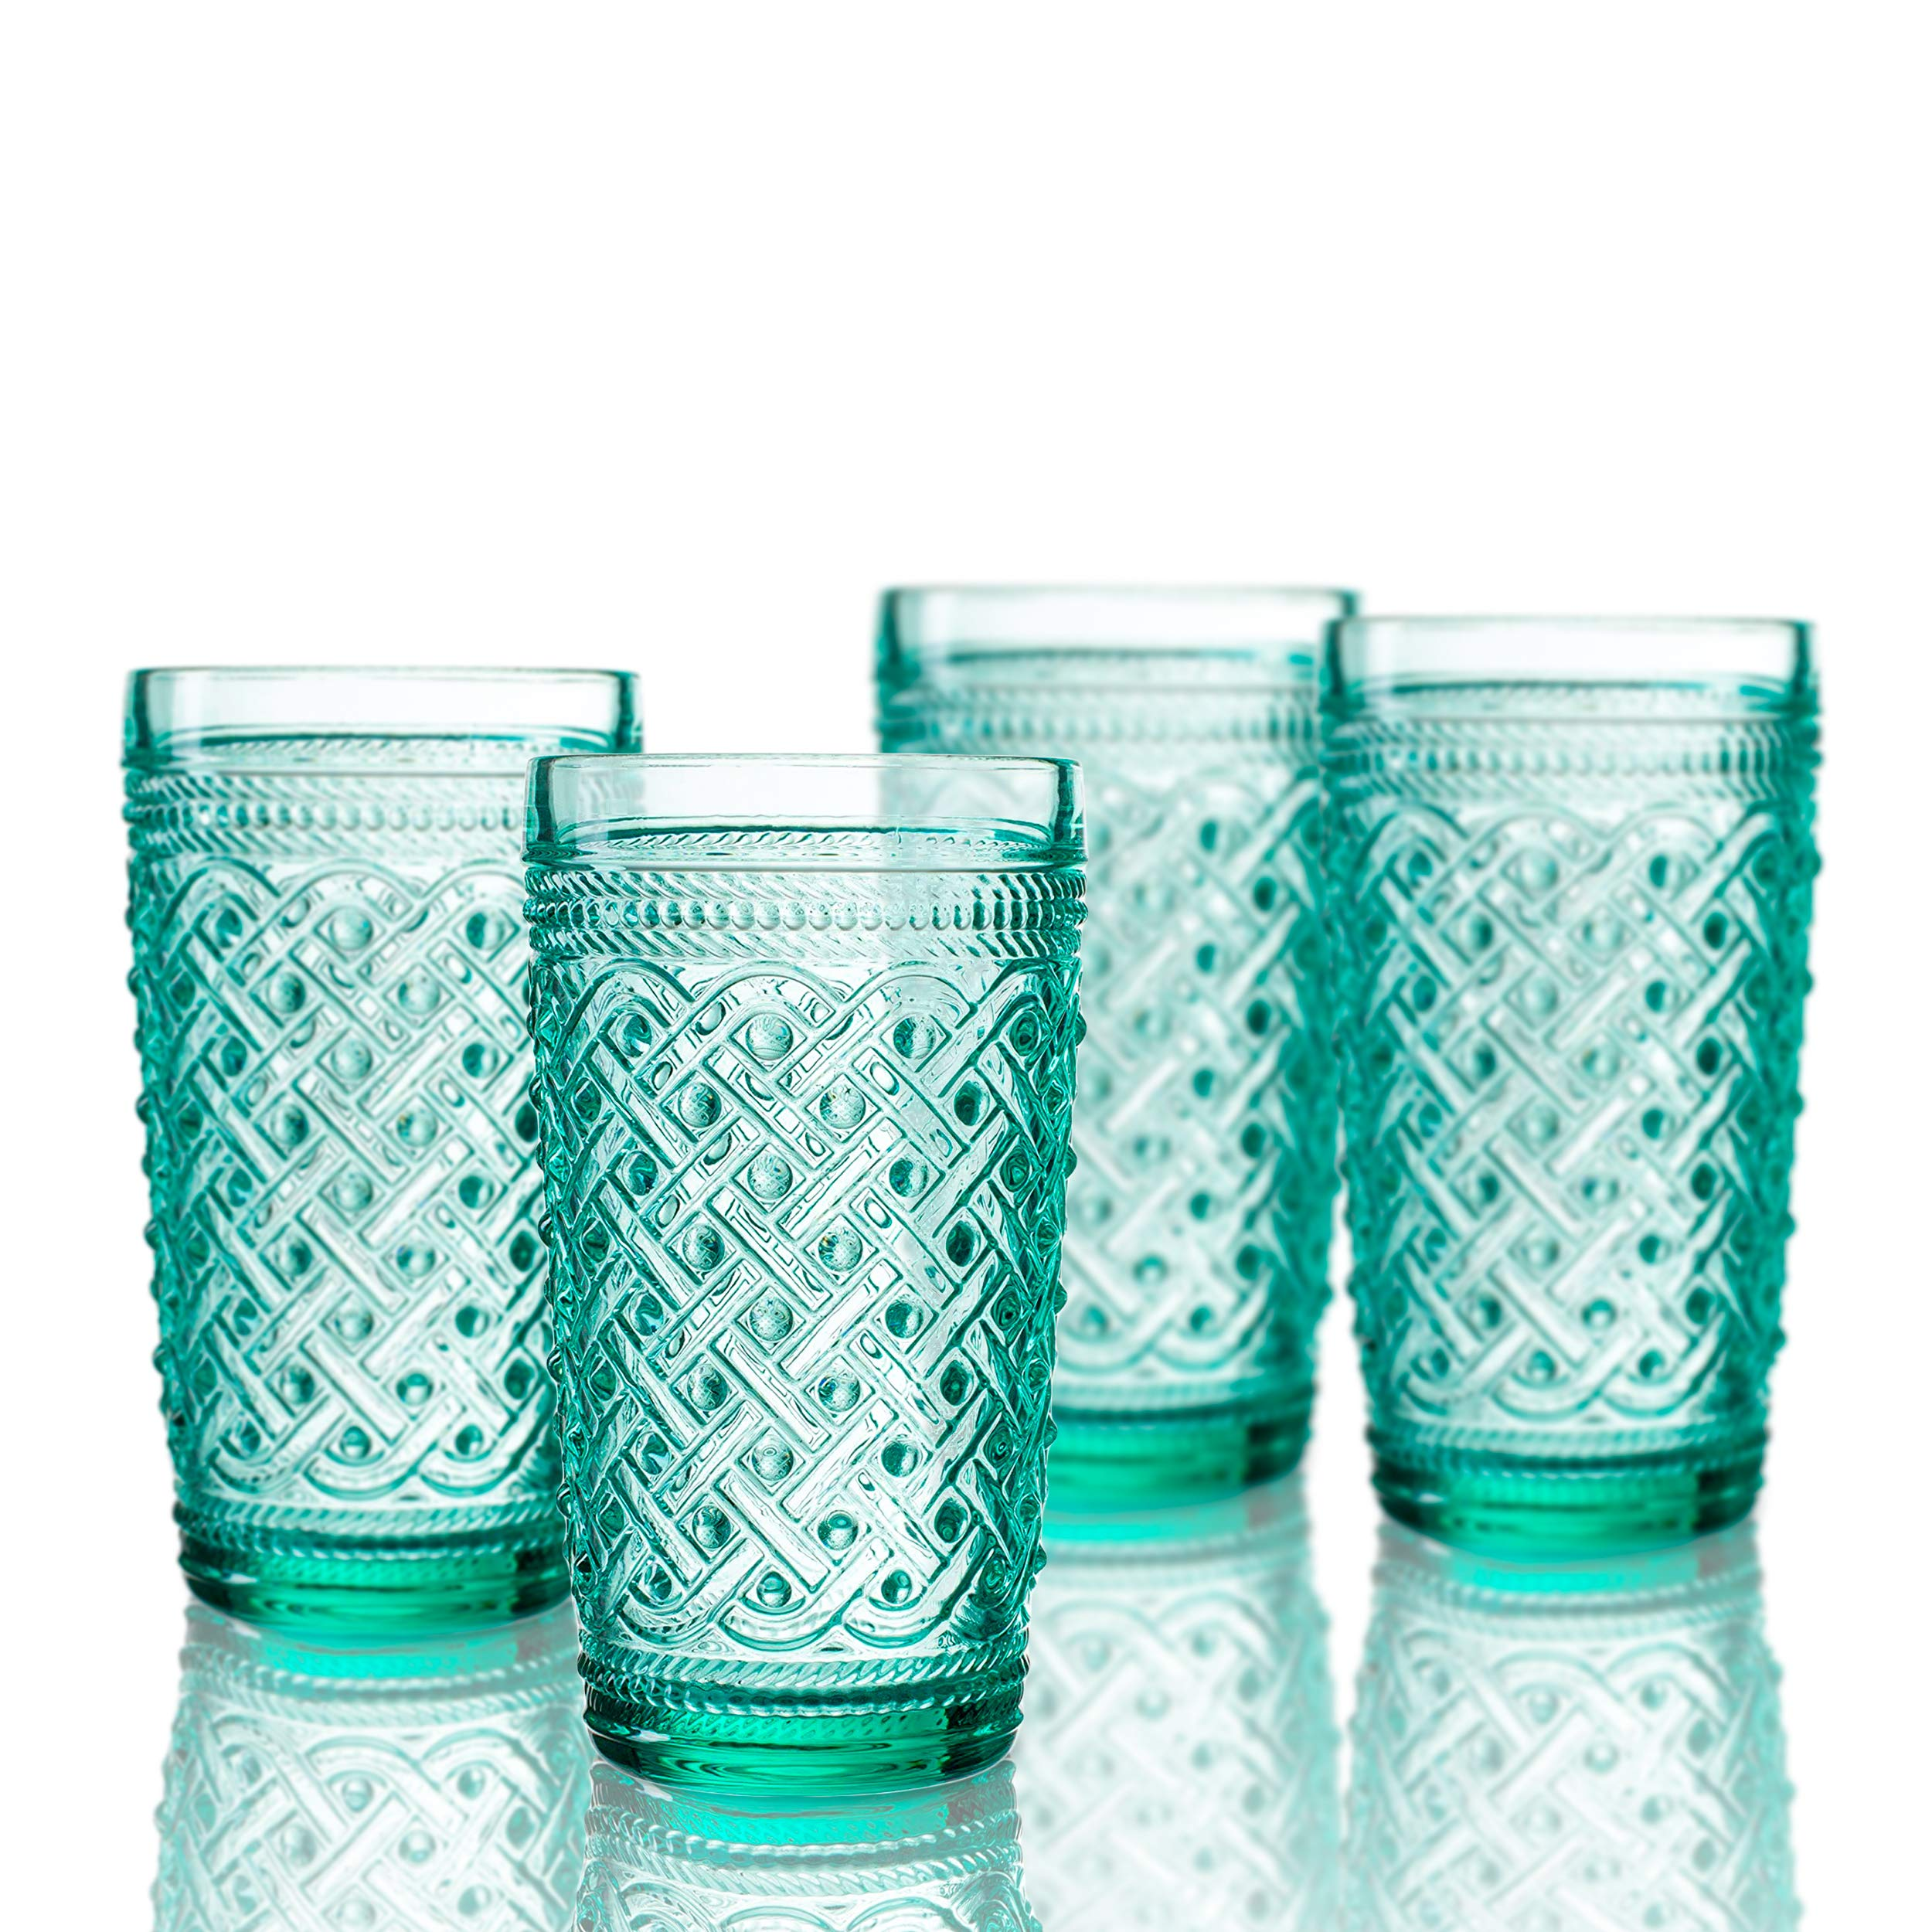 Elle Decor 229807-4HBGR Bistro Ikat Set of 4 Highballs, Green-Glass Elegant Barware and Drinkware, Dishwasher Safe, 13 oz,